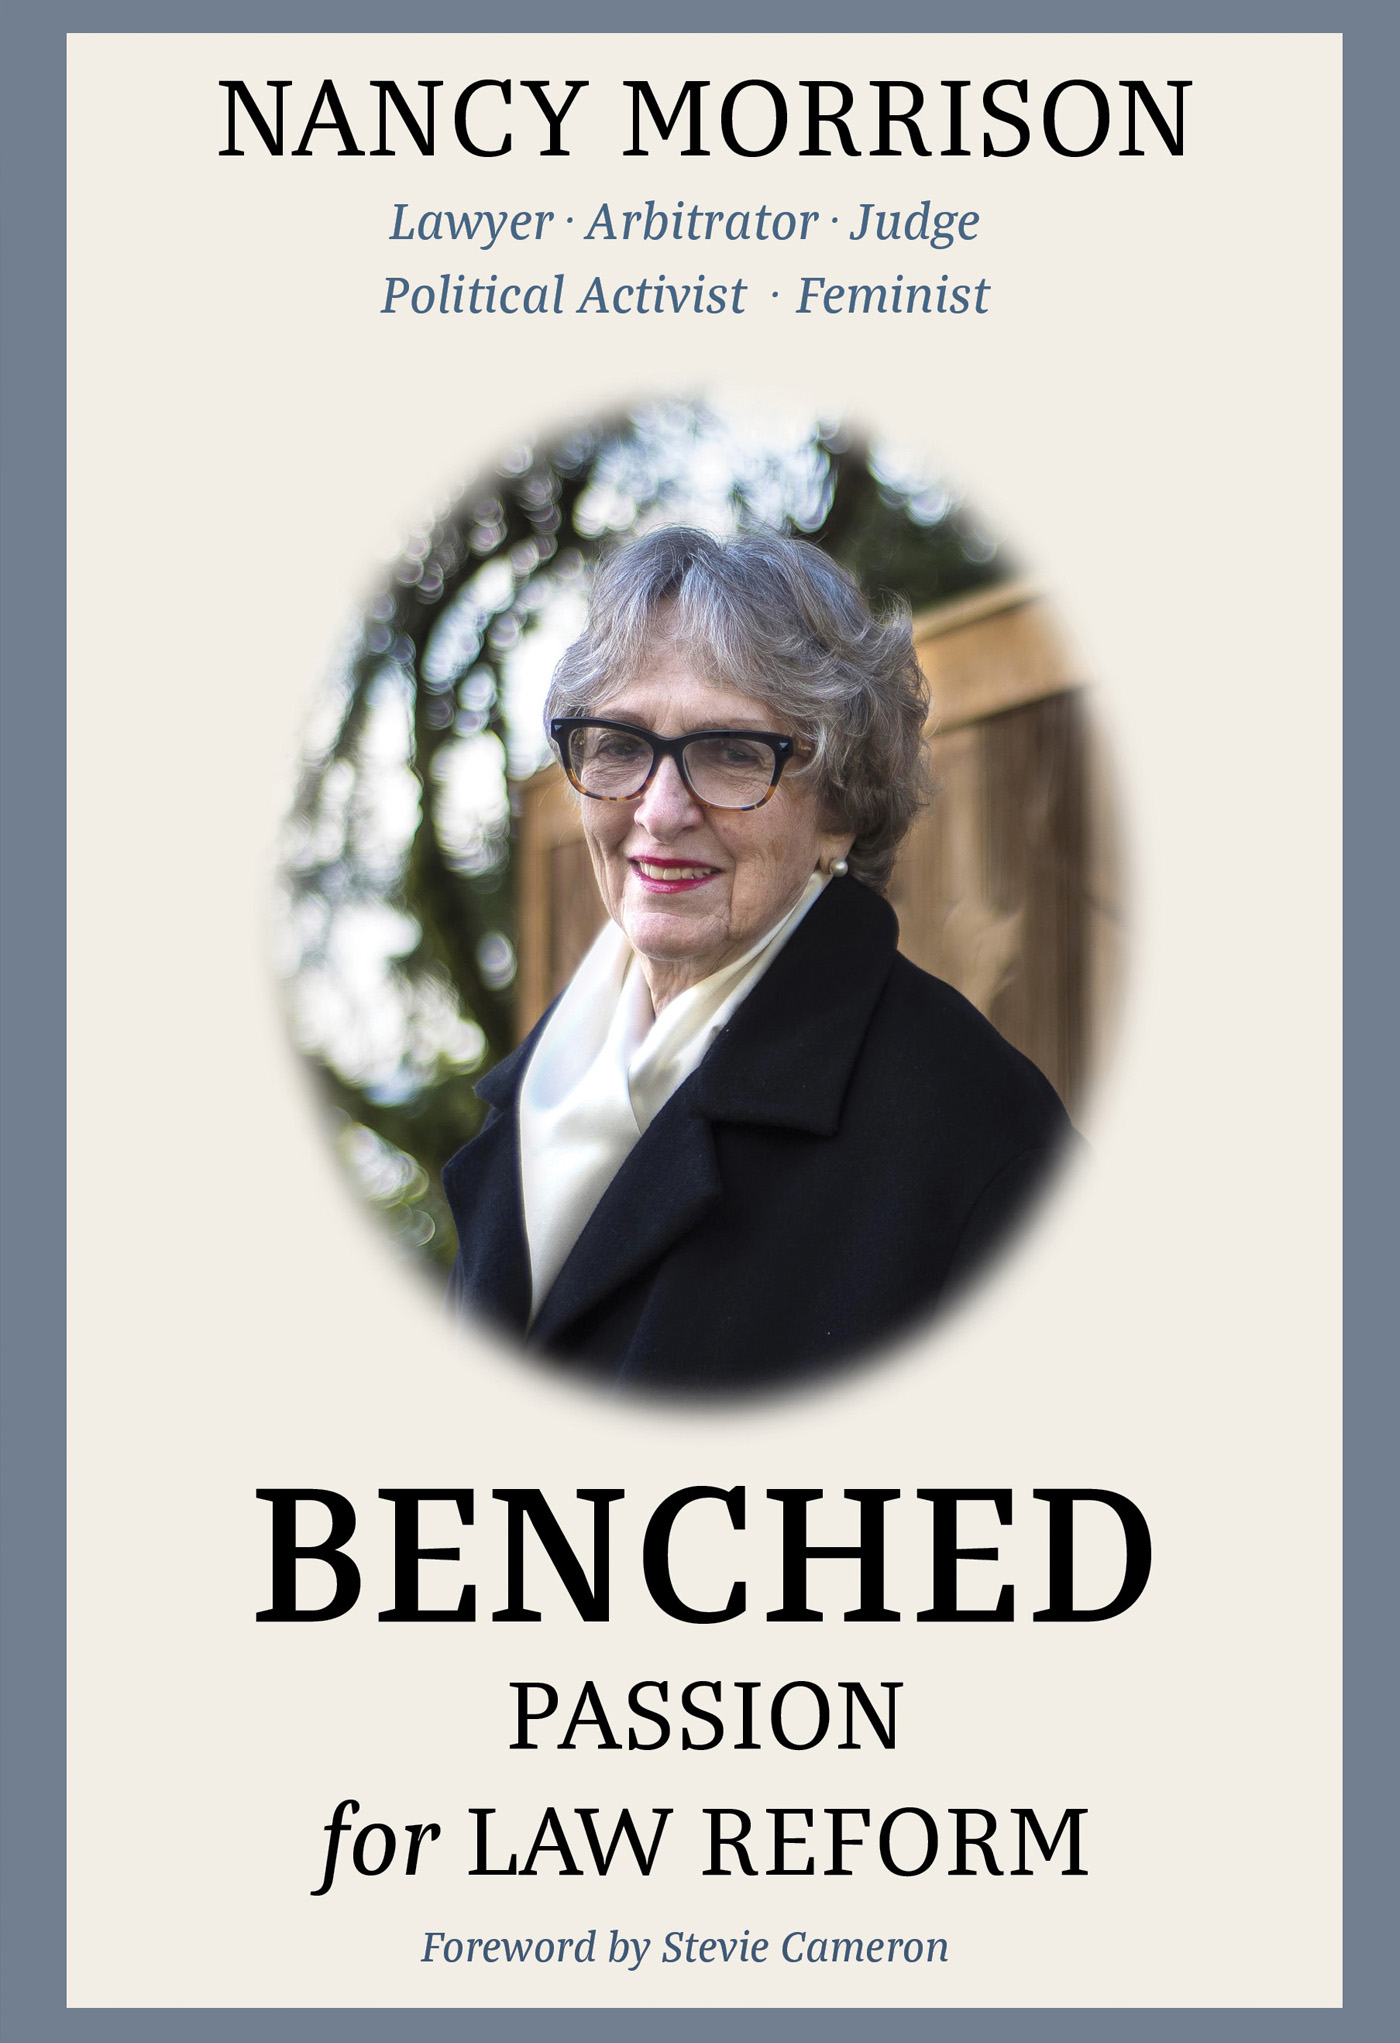 Benched: Passion for Law Reform